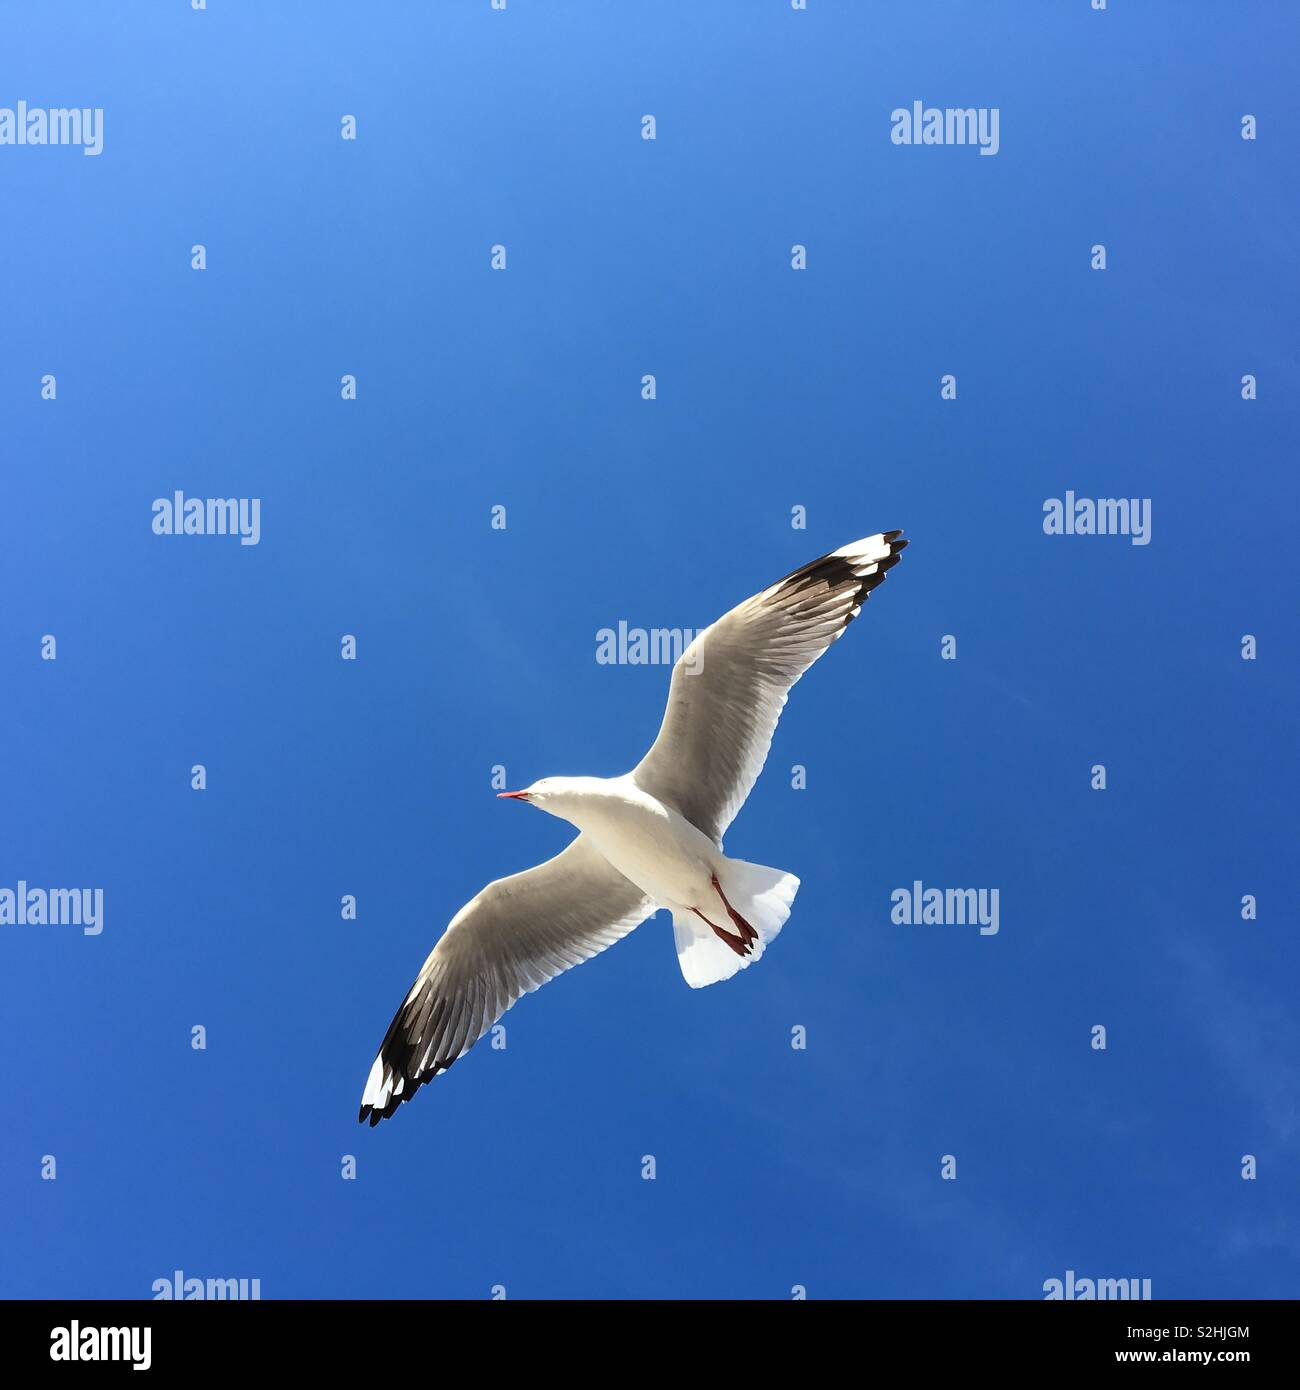 Seagull in flight against a blue sky Stock Photo